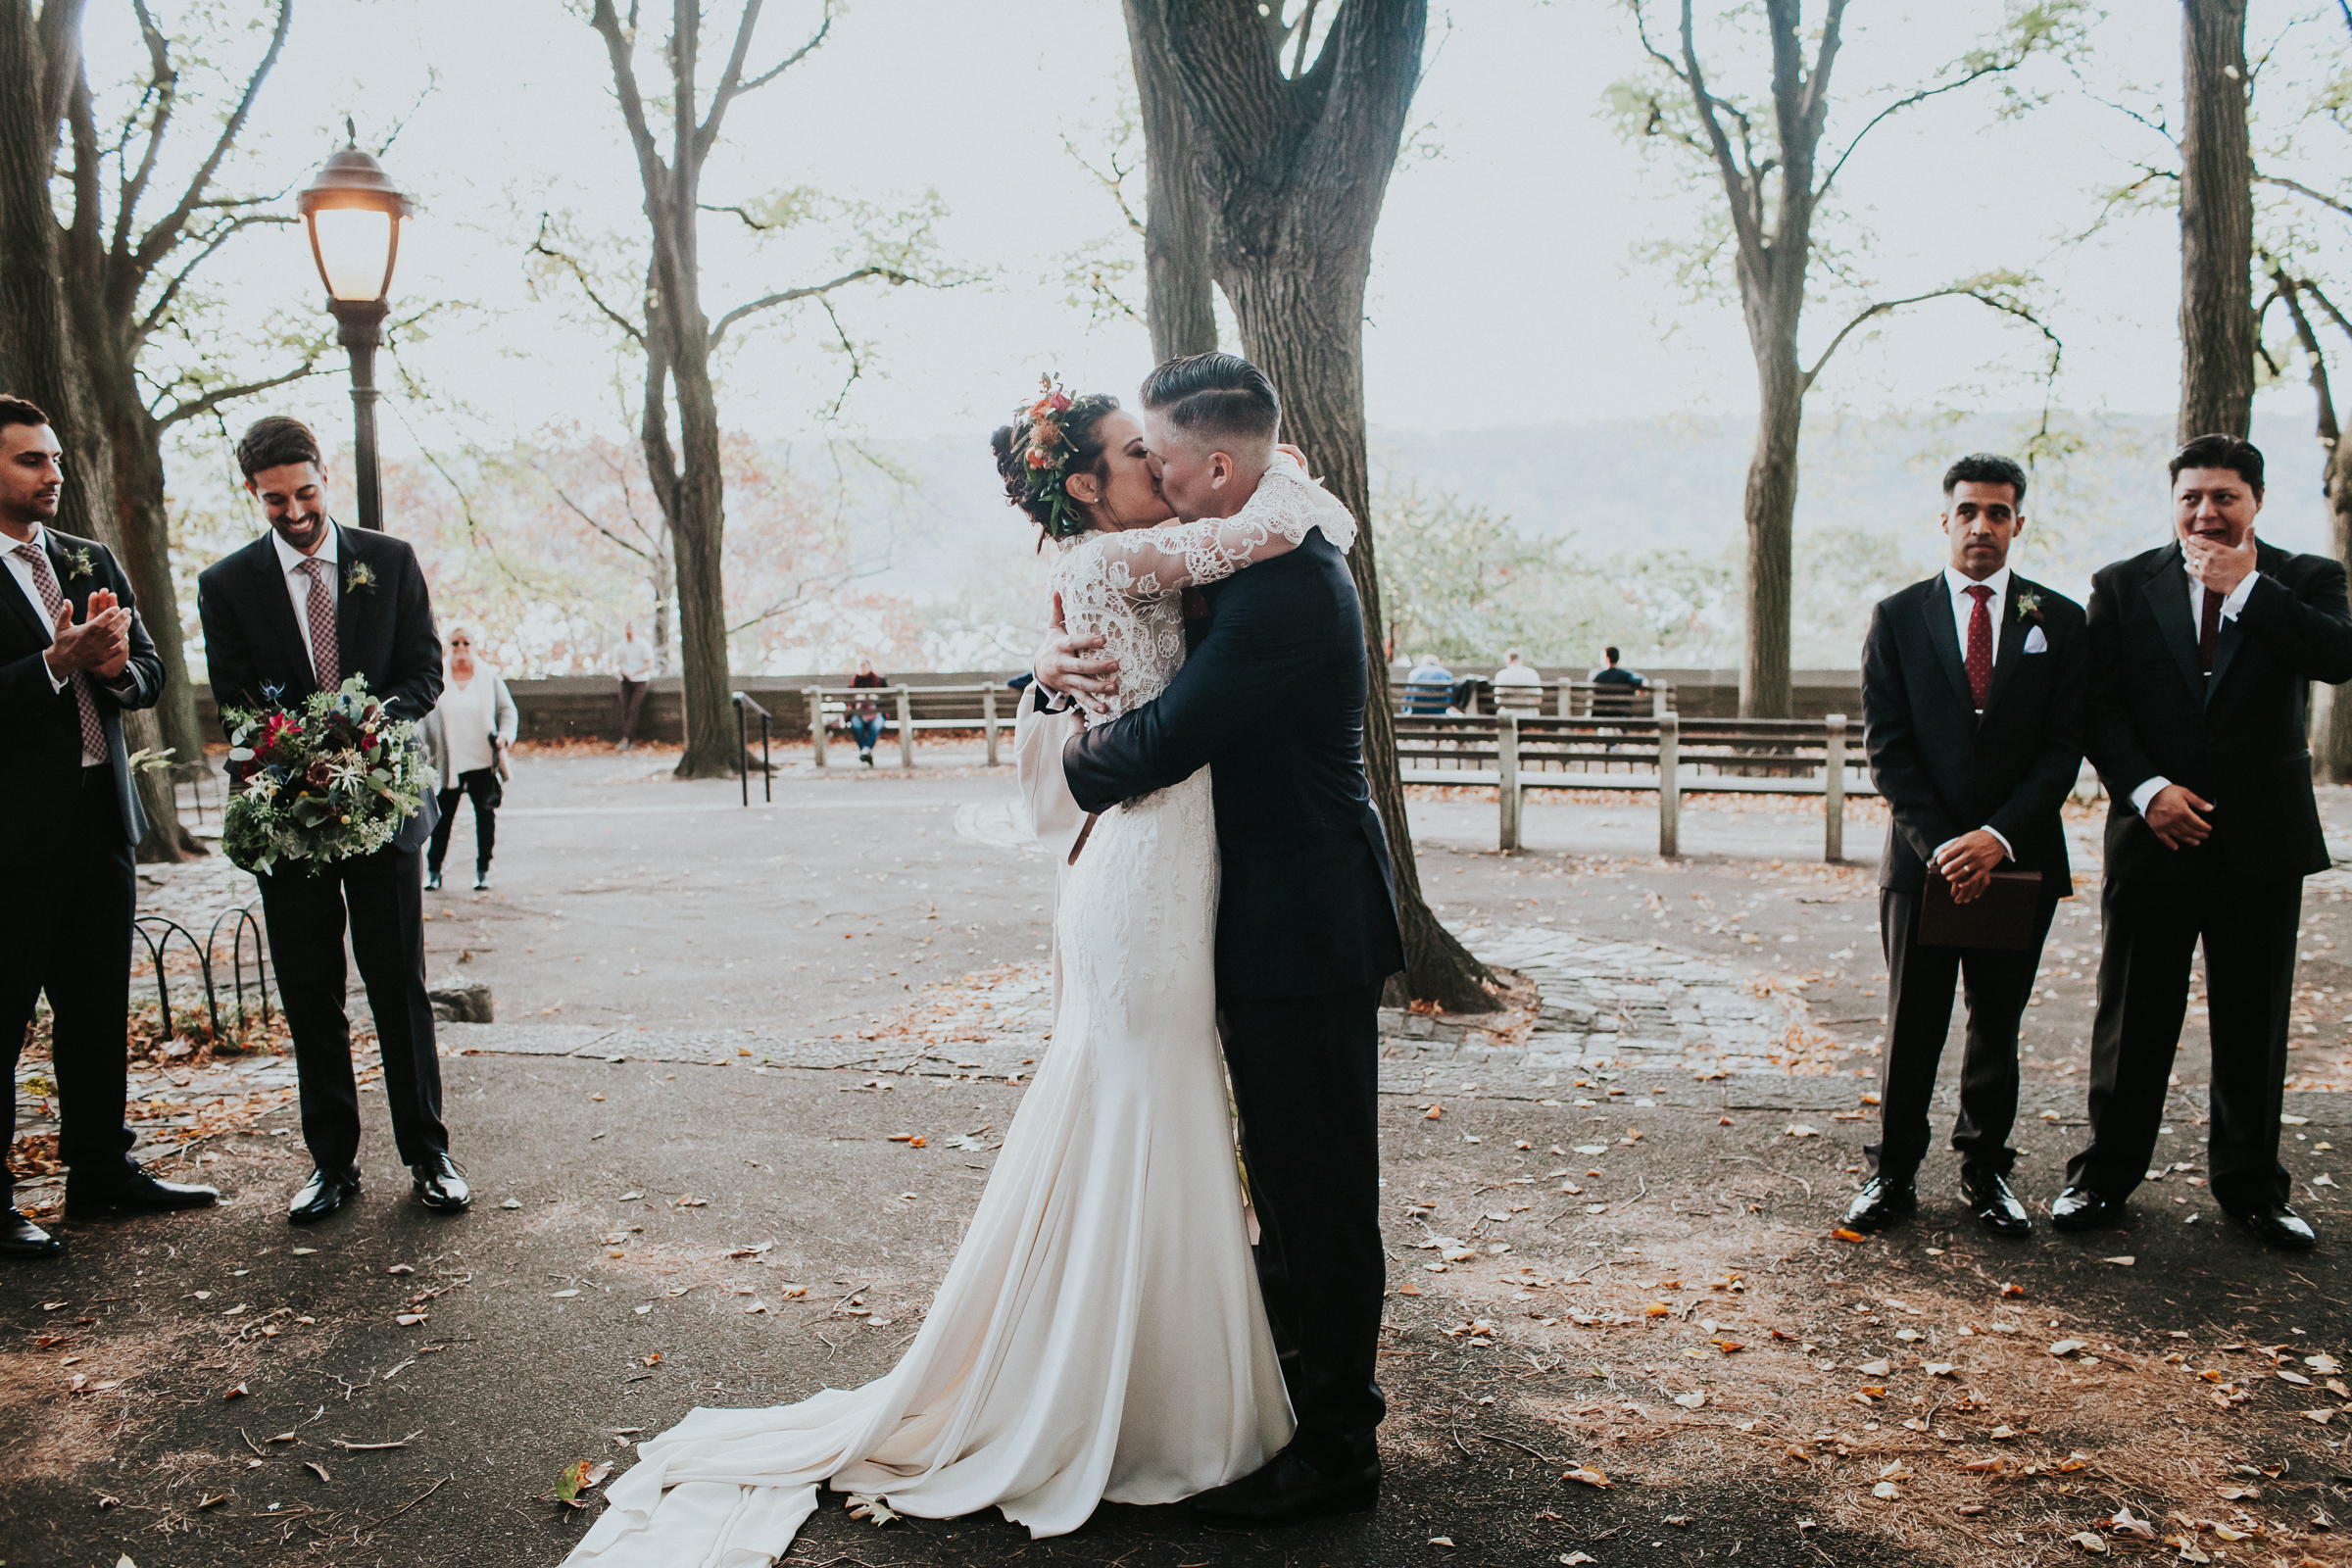 New-Leaf-Cafe-Fort-Tryon-Park-New-York-Documentary-Wedding-Photographer-62.jpg